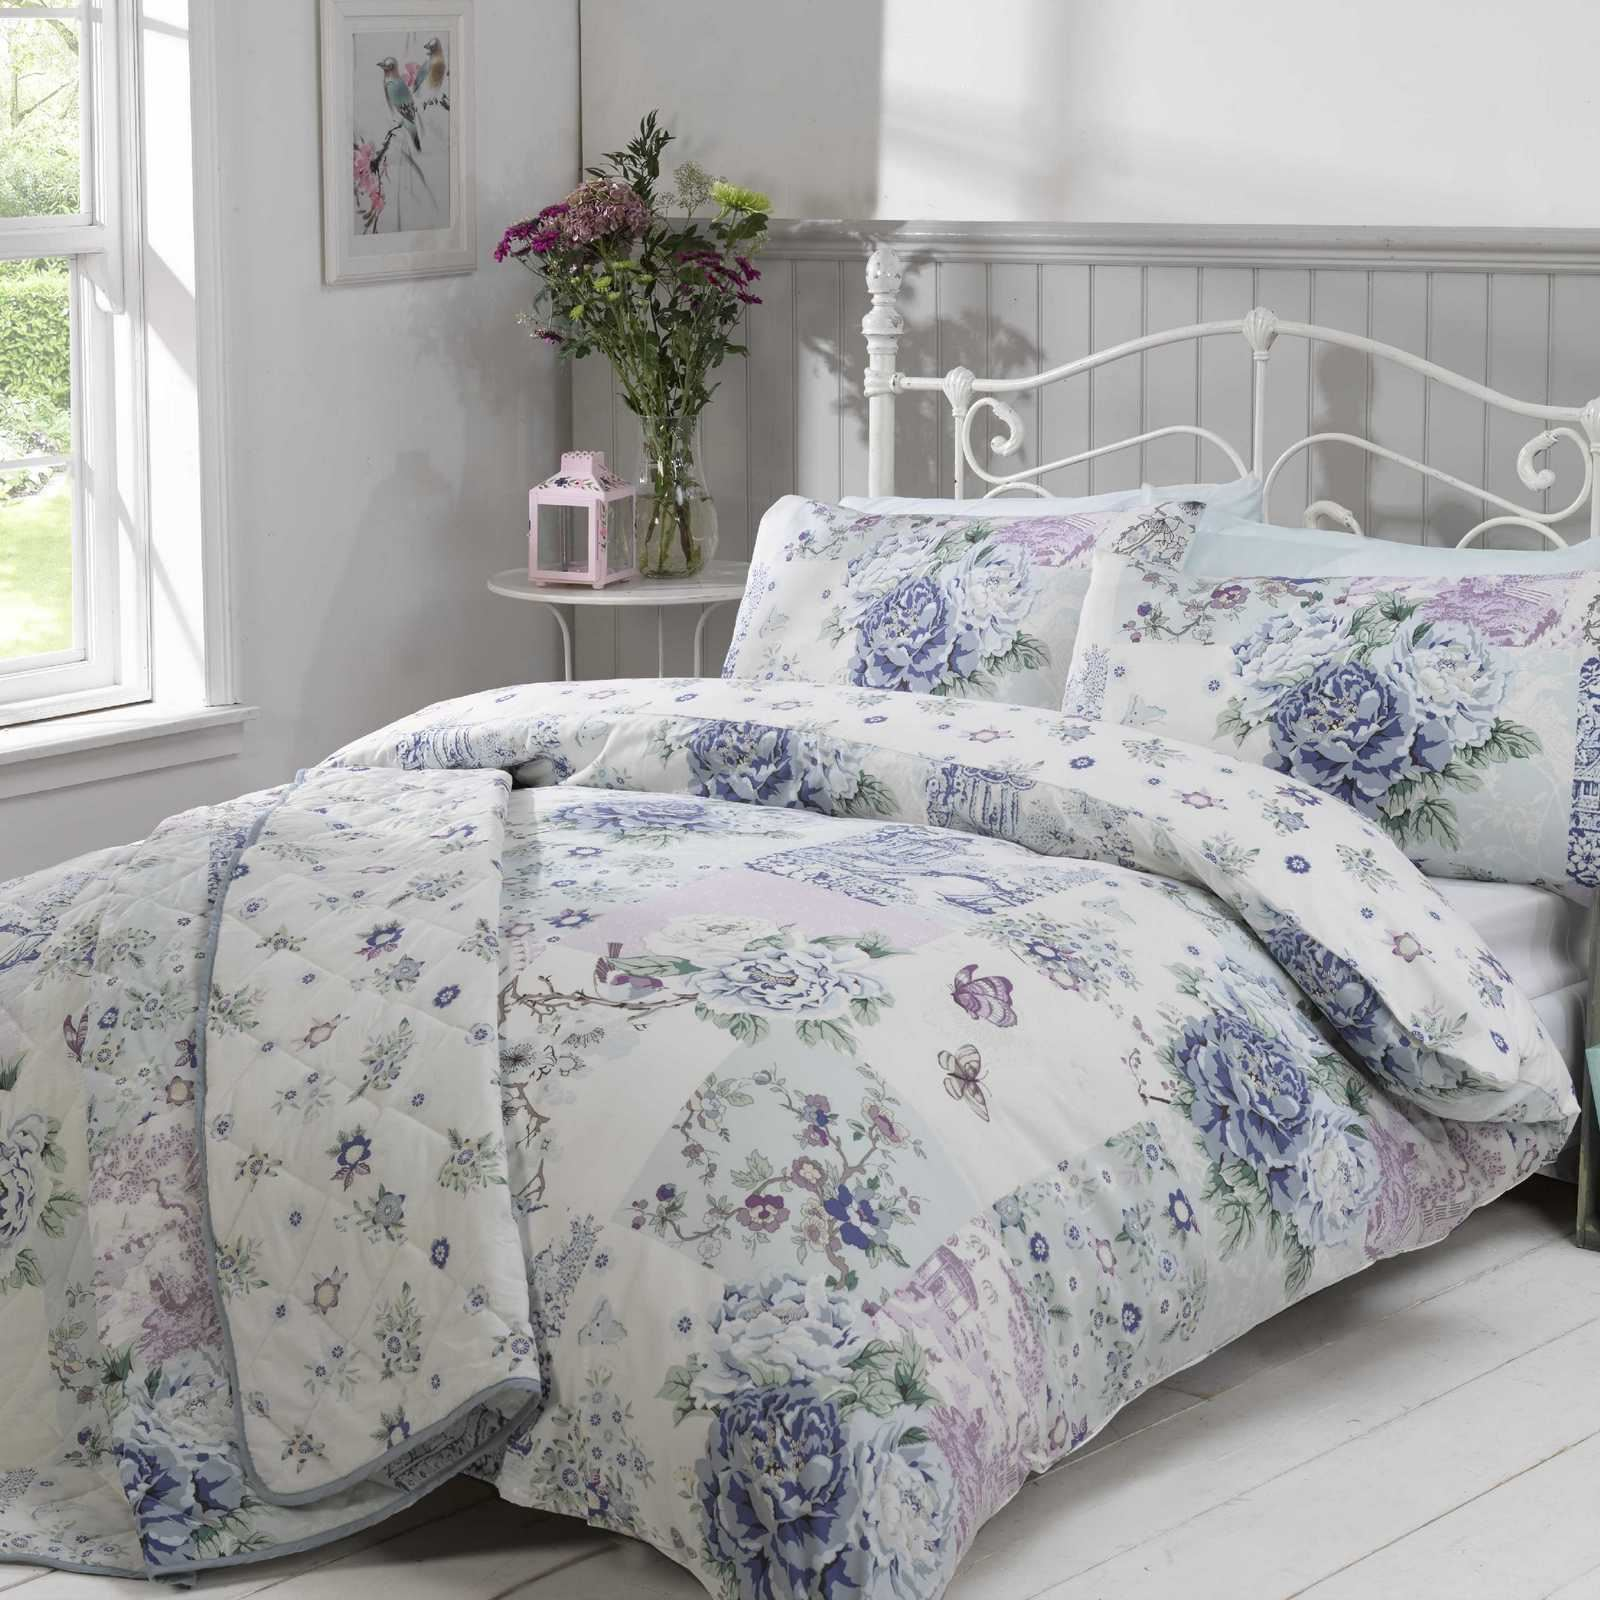 Cottage & French Country Bedding Sets. 2, Results. Sort Filter. Our selection has farmhouse bedding that falls into slightly modern and chic or you can find french country bedding with a vintage feel to it. queen, king and more. Whether you want to buy your bed linens and comforter separately or you want a bed-in-a-bag set, we have.